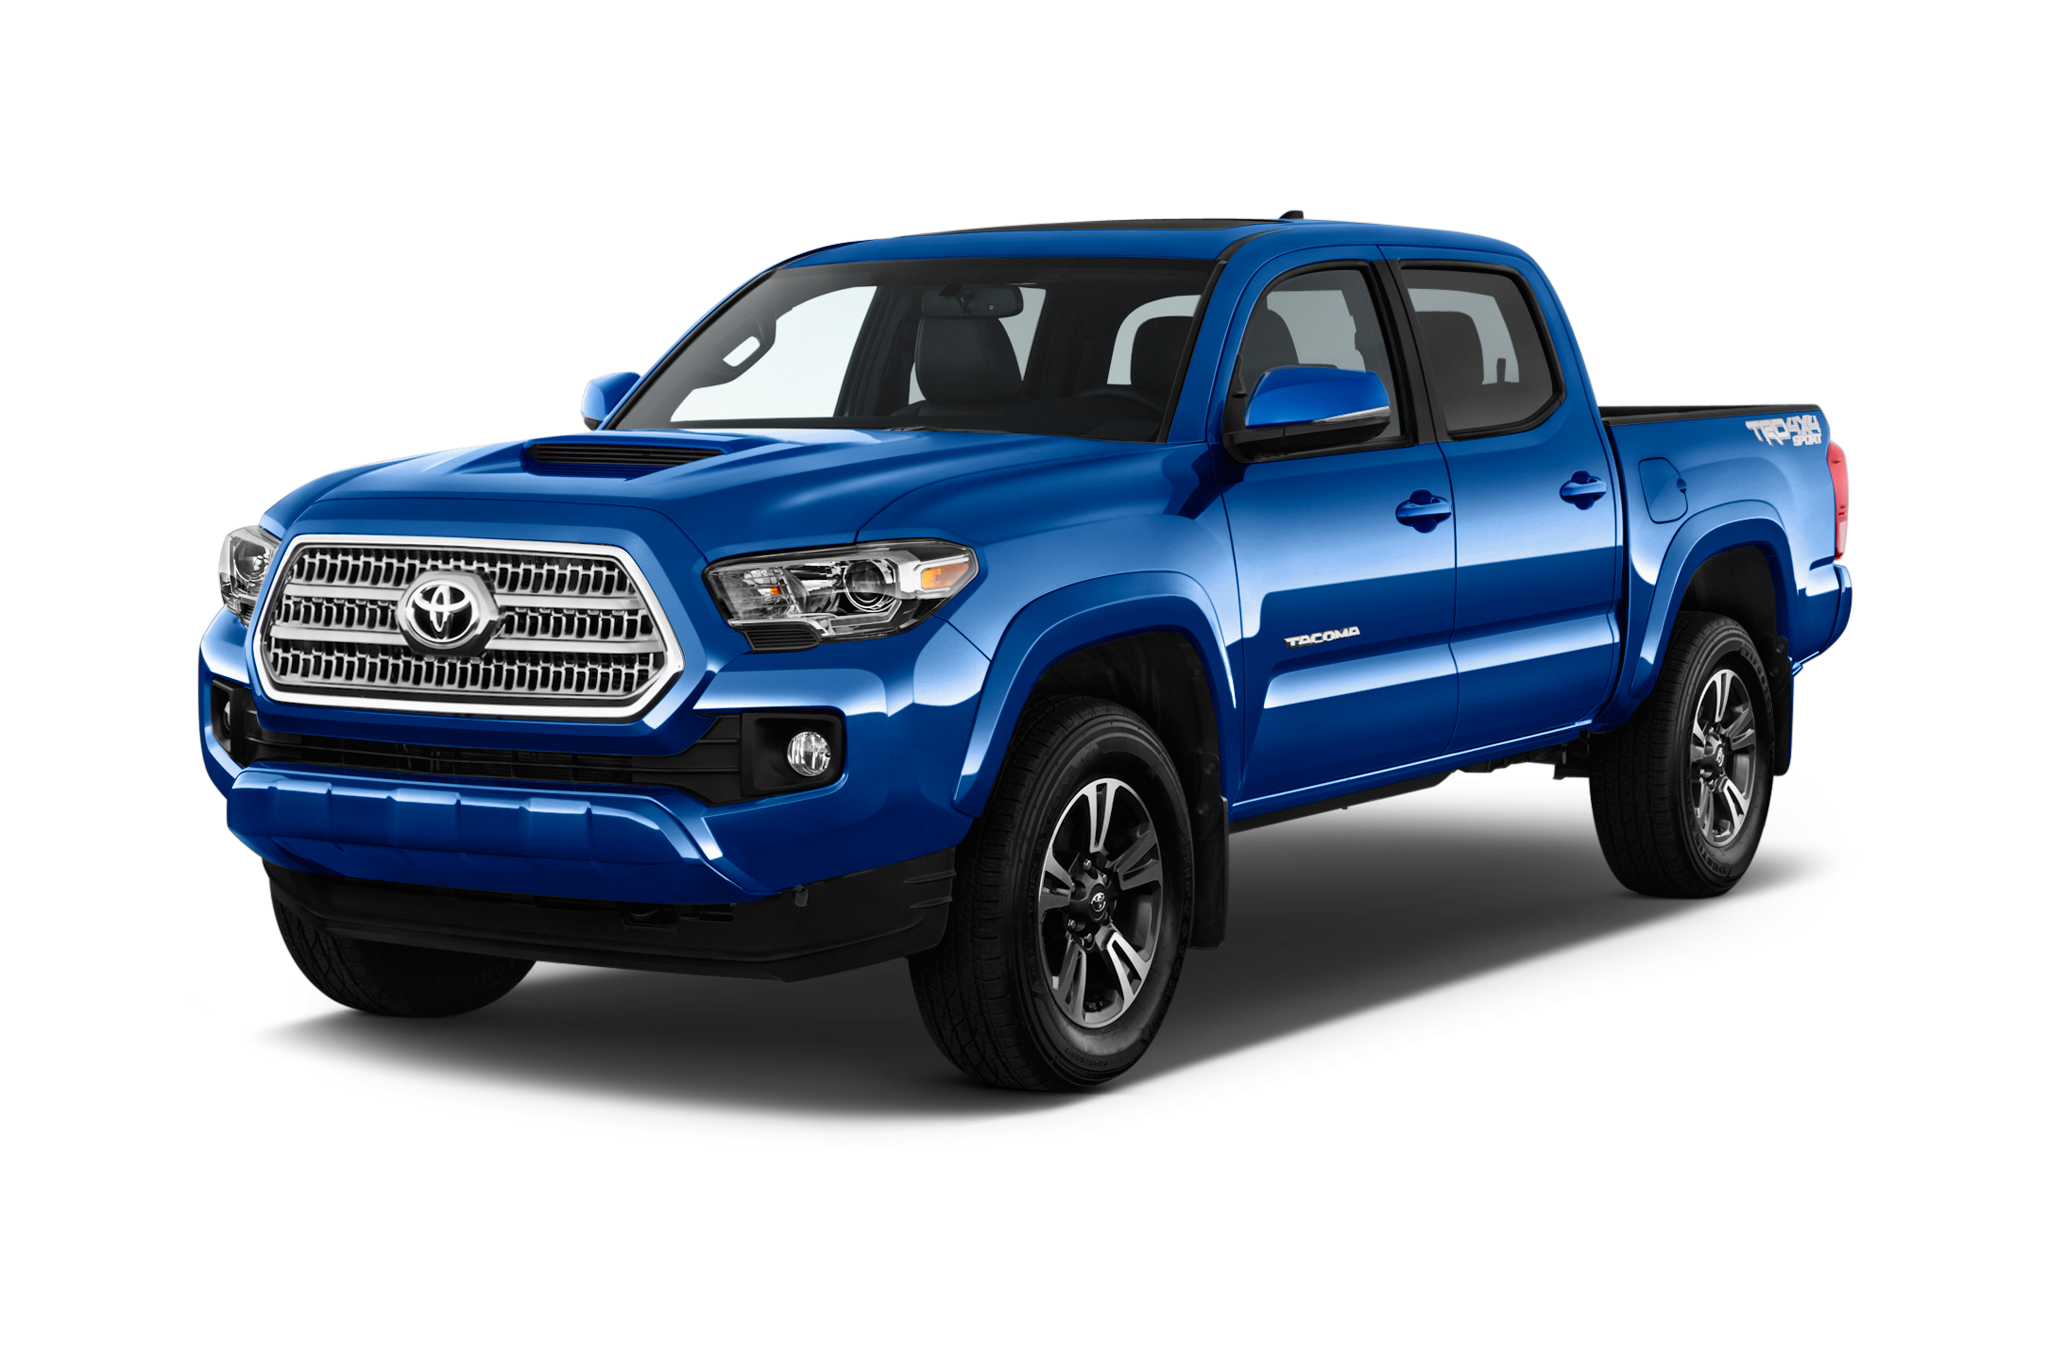 2017 toyota tacoma trd sport double cab 4x4 v6 auto sb specs and features msn autos. Black Bedroom Furniture Sets. Home Design Ideas